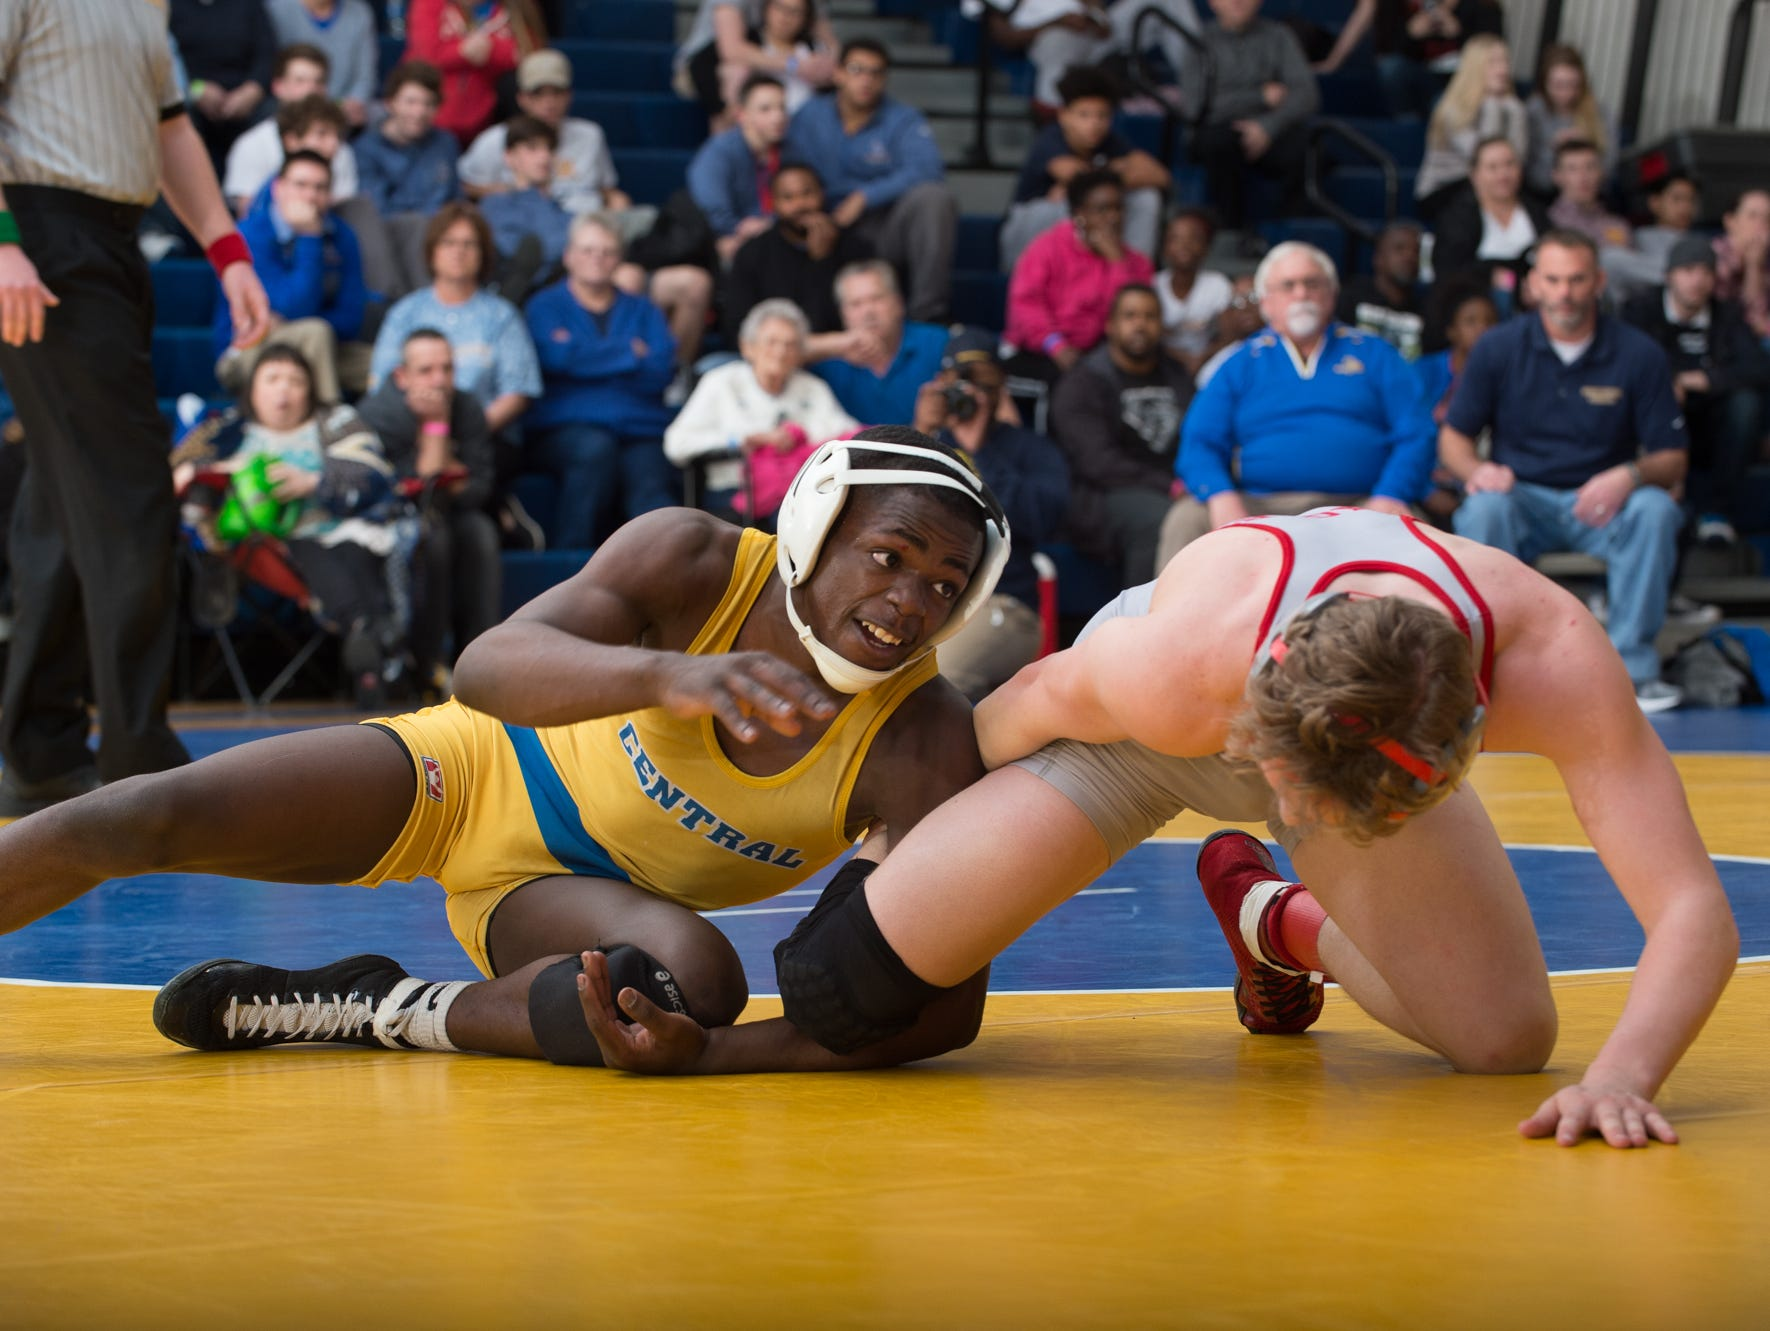 Sussex Central's Rashad Stratton, left, wrestles Smyrna's Cole Sebastianelli in the 126 pound championship match at the Henlopen Conference wrestling tournament at Sussex Central High School.